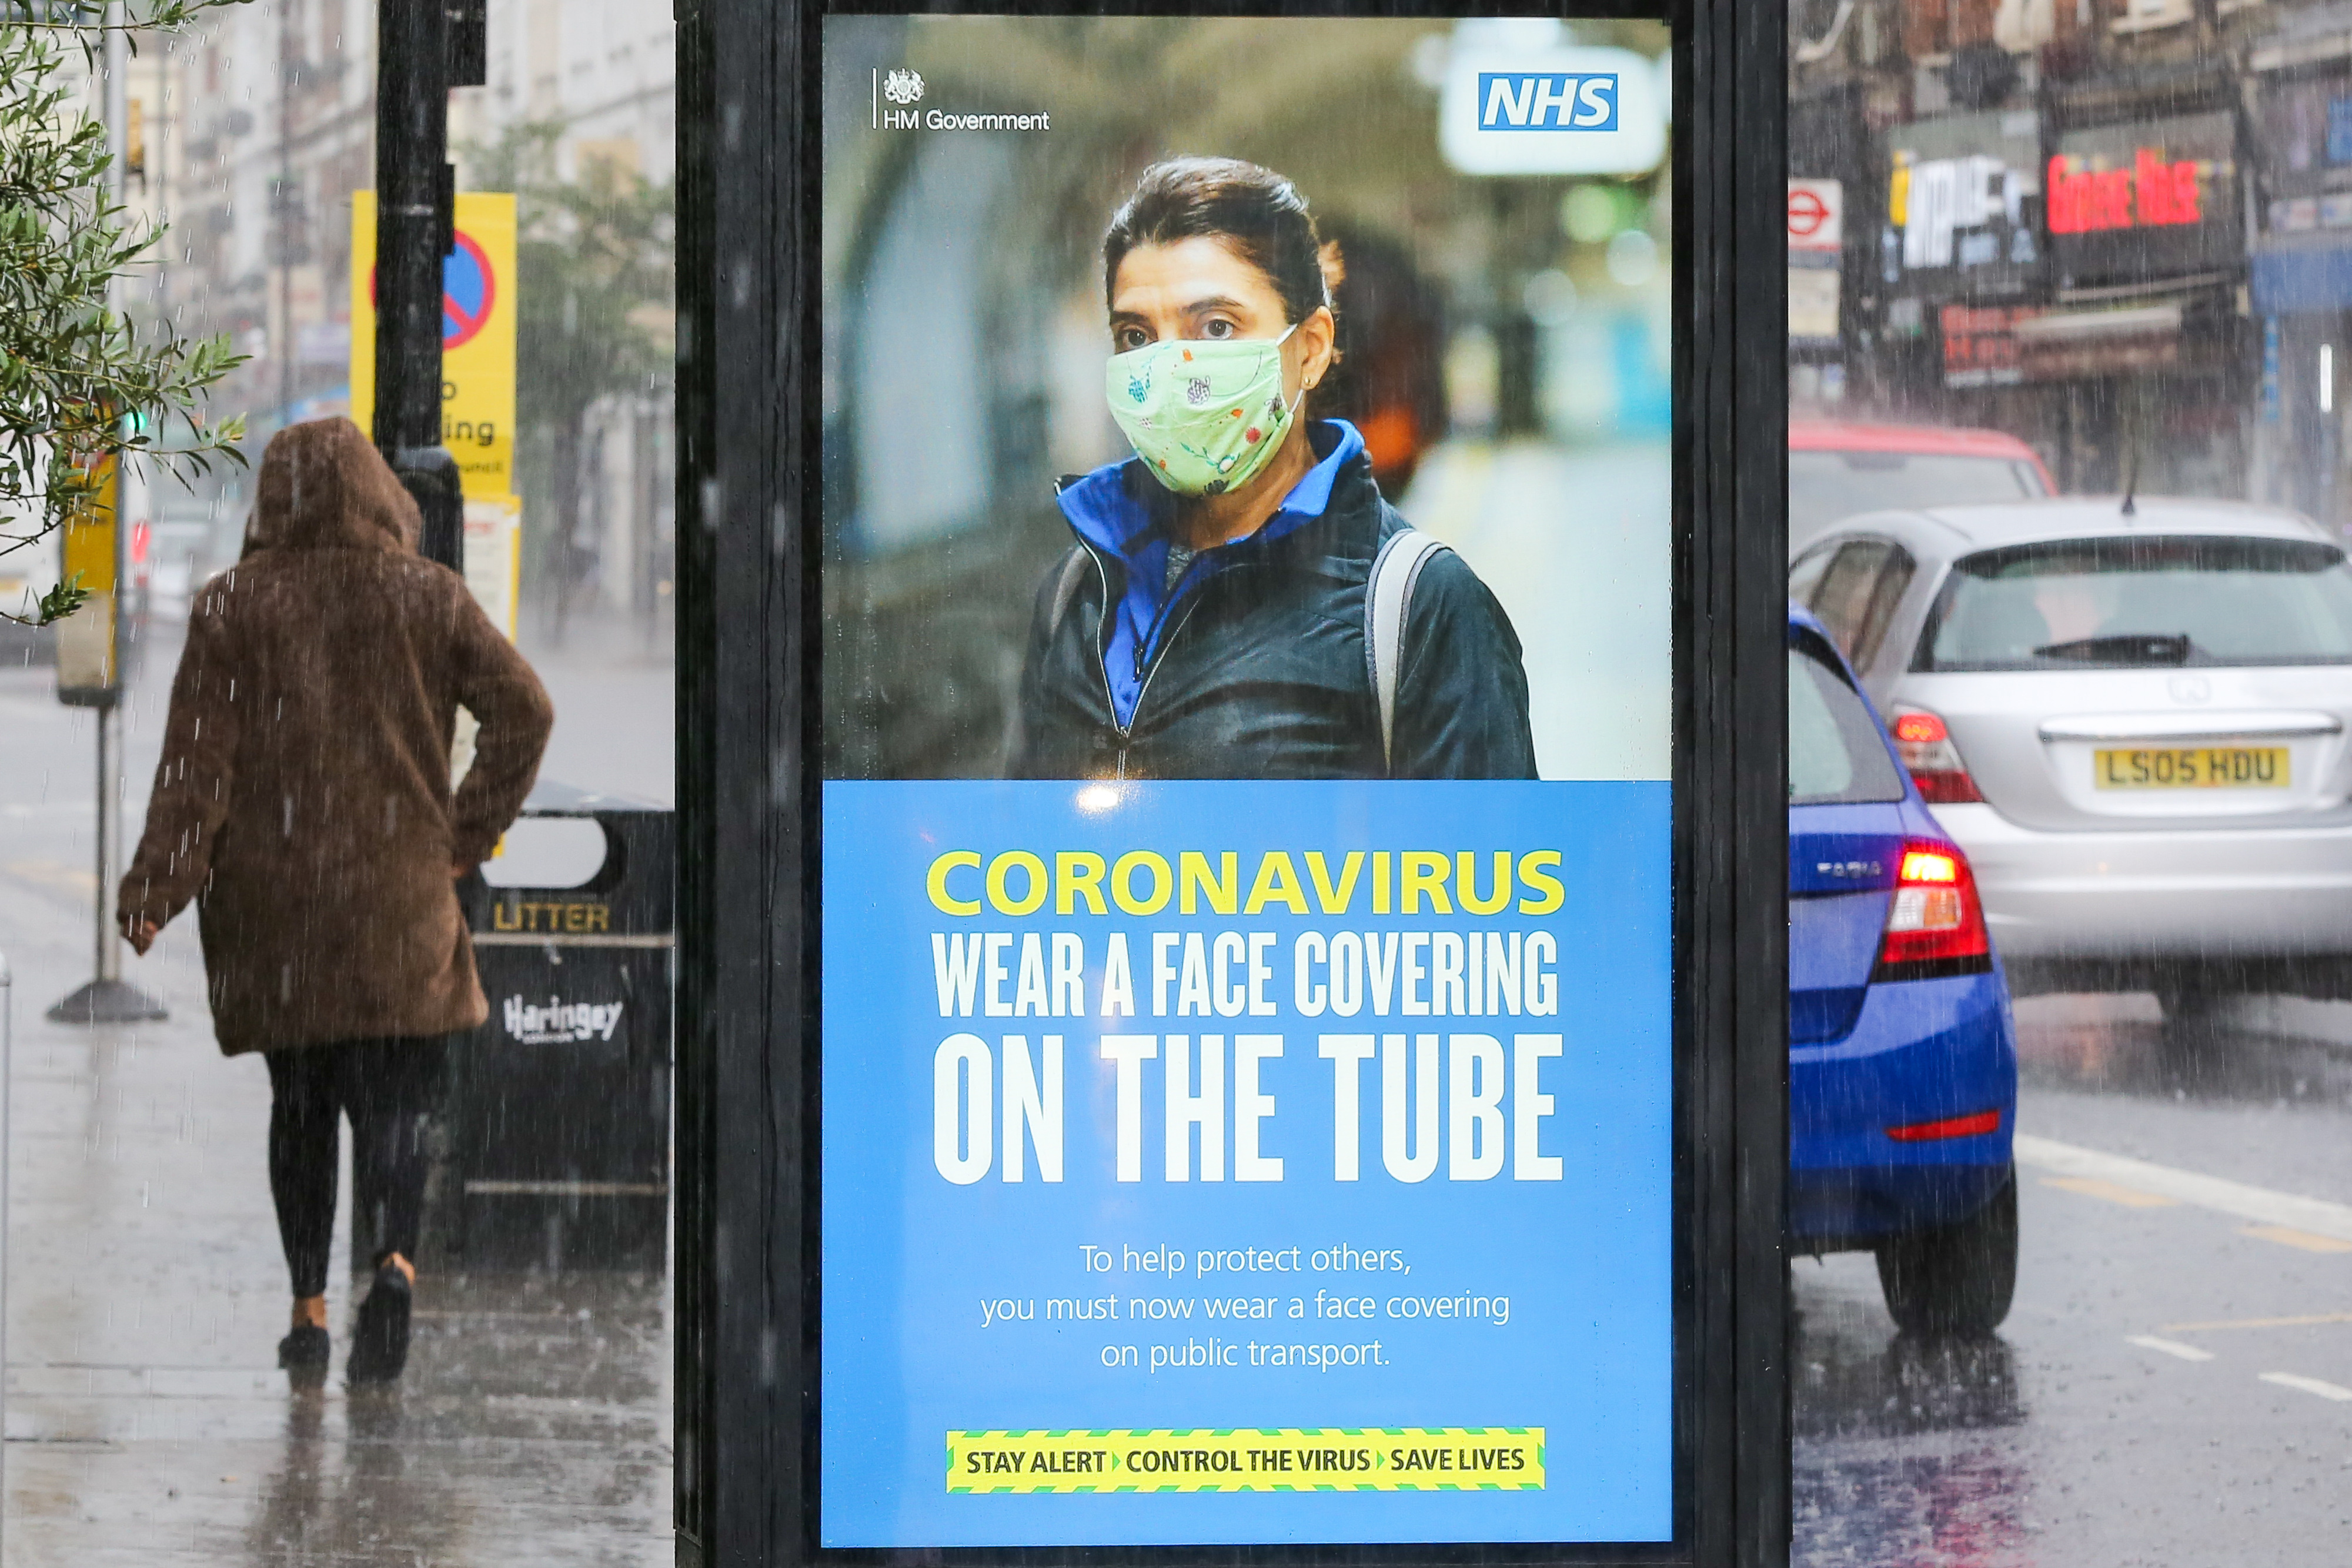 A woman walks past a face mask awareness billboard on a coronavirus public information campaign by Transport for London. (Photo by Dinendra Haria / SOPA Images/Sipa USA)